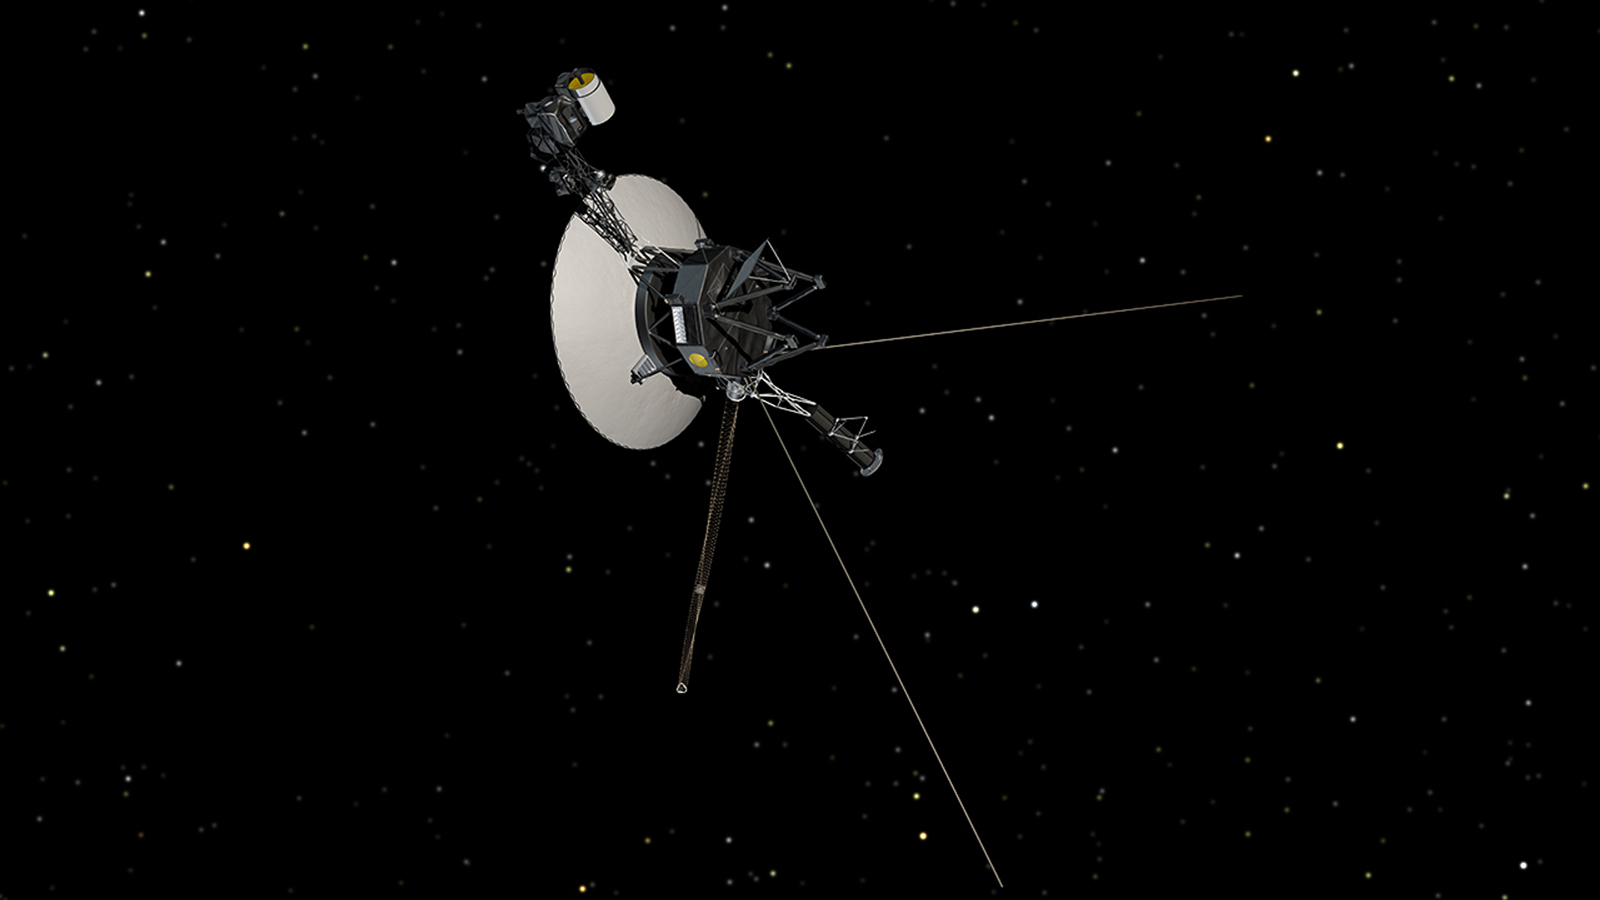 Voyager spacecraft in space